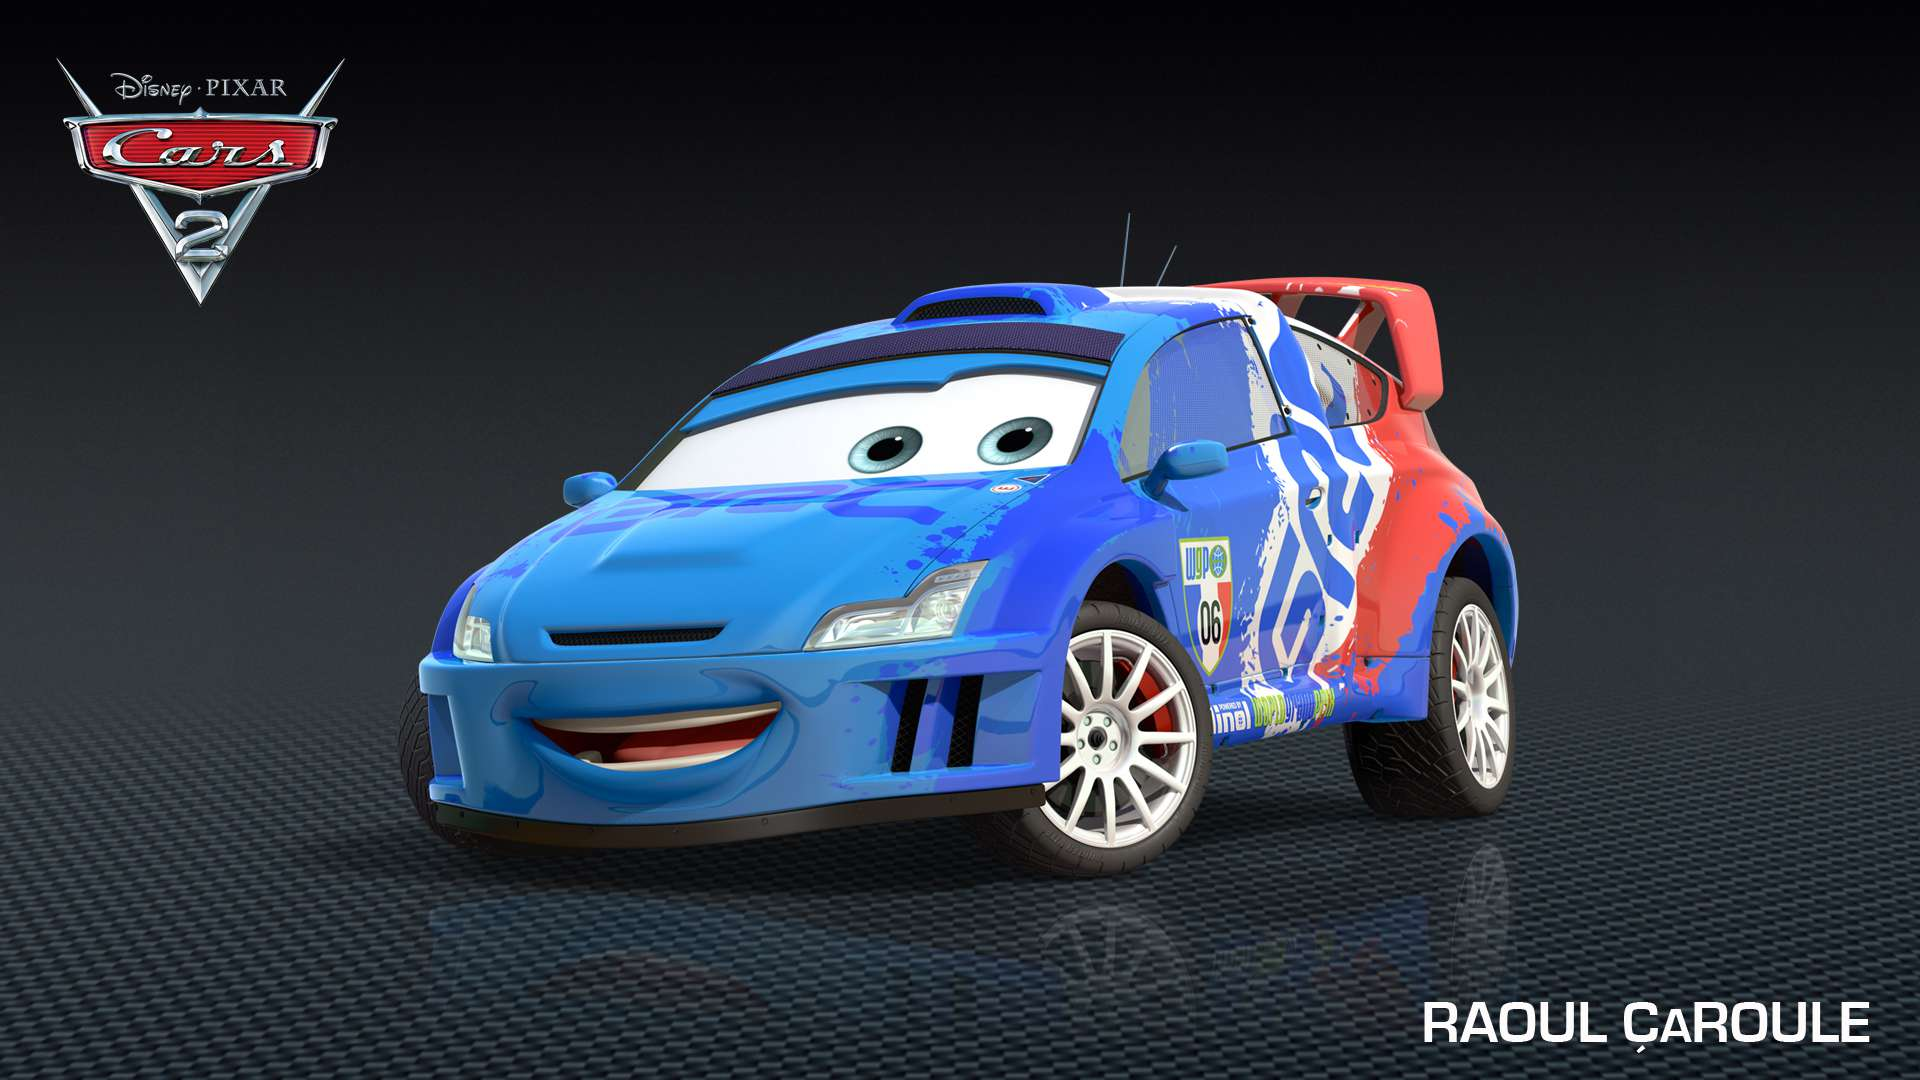 Cars 2 Characters - Characters in Disney Pixar Cars 2